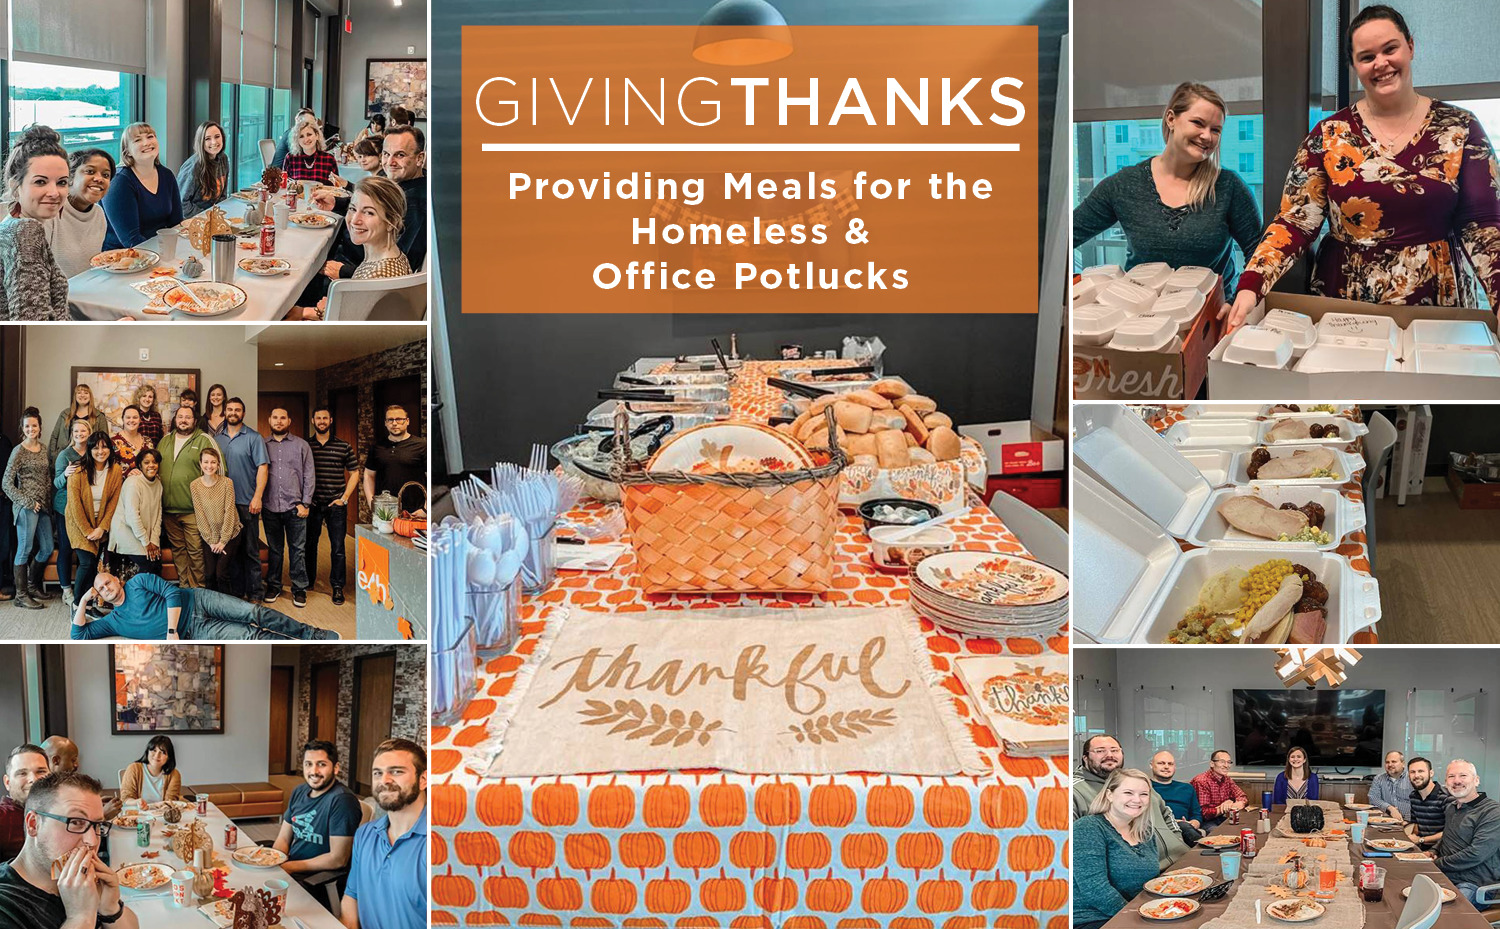 Members of the E4H Fort Worth team eating a Thanksgiving meal and boxing up food to donate to those in need